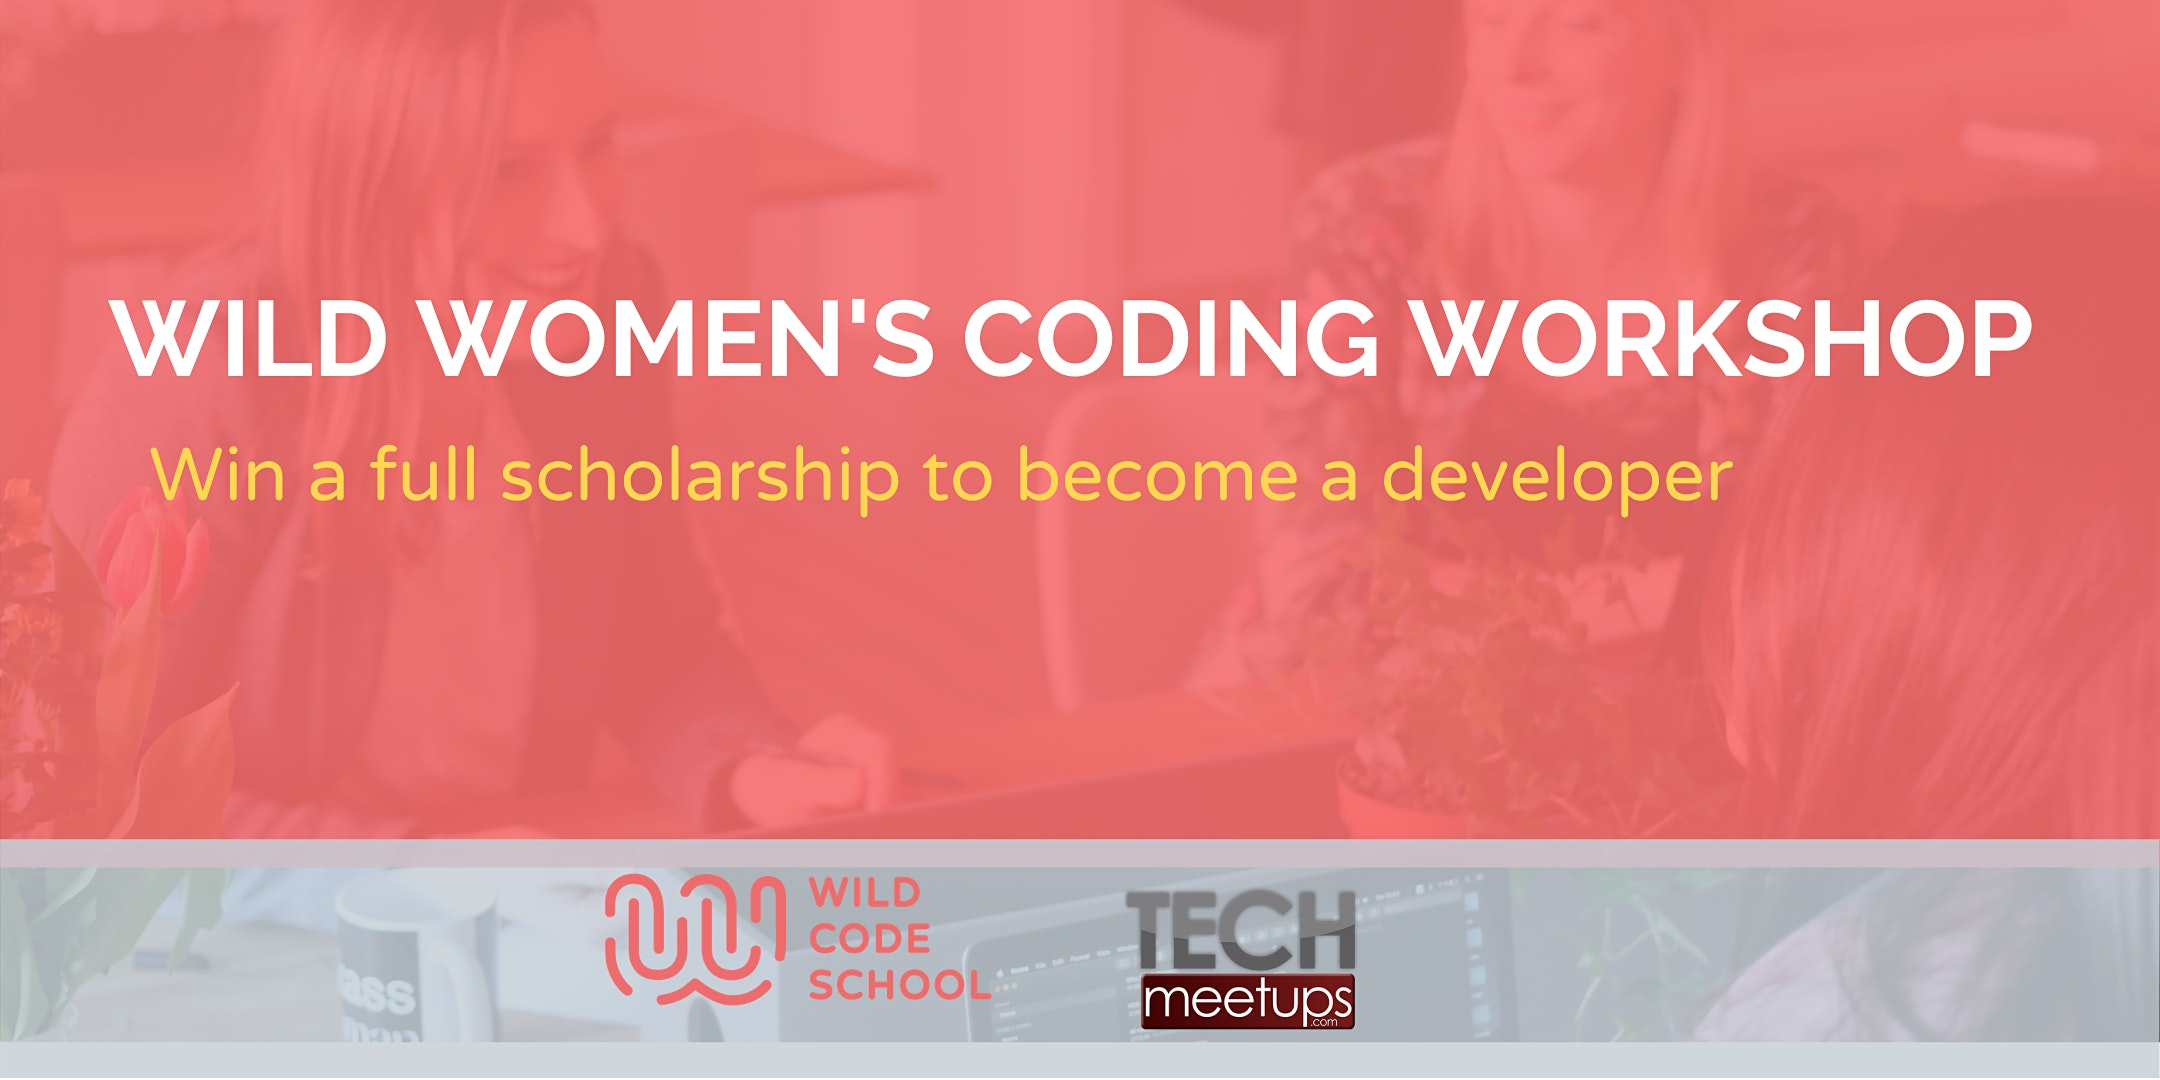 WILD WOMEN CODING WORKSHOP- Win a scholarship to become a developer